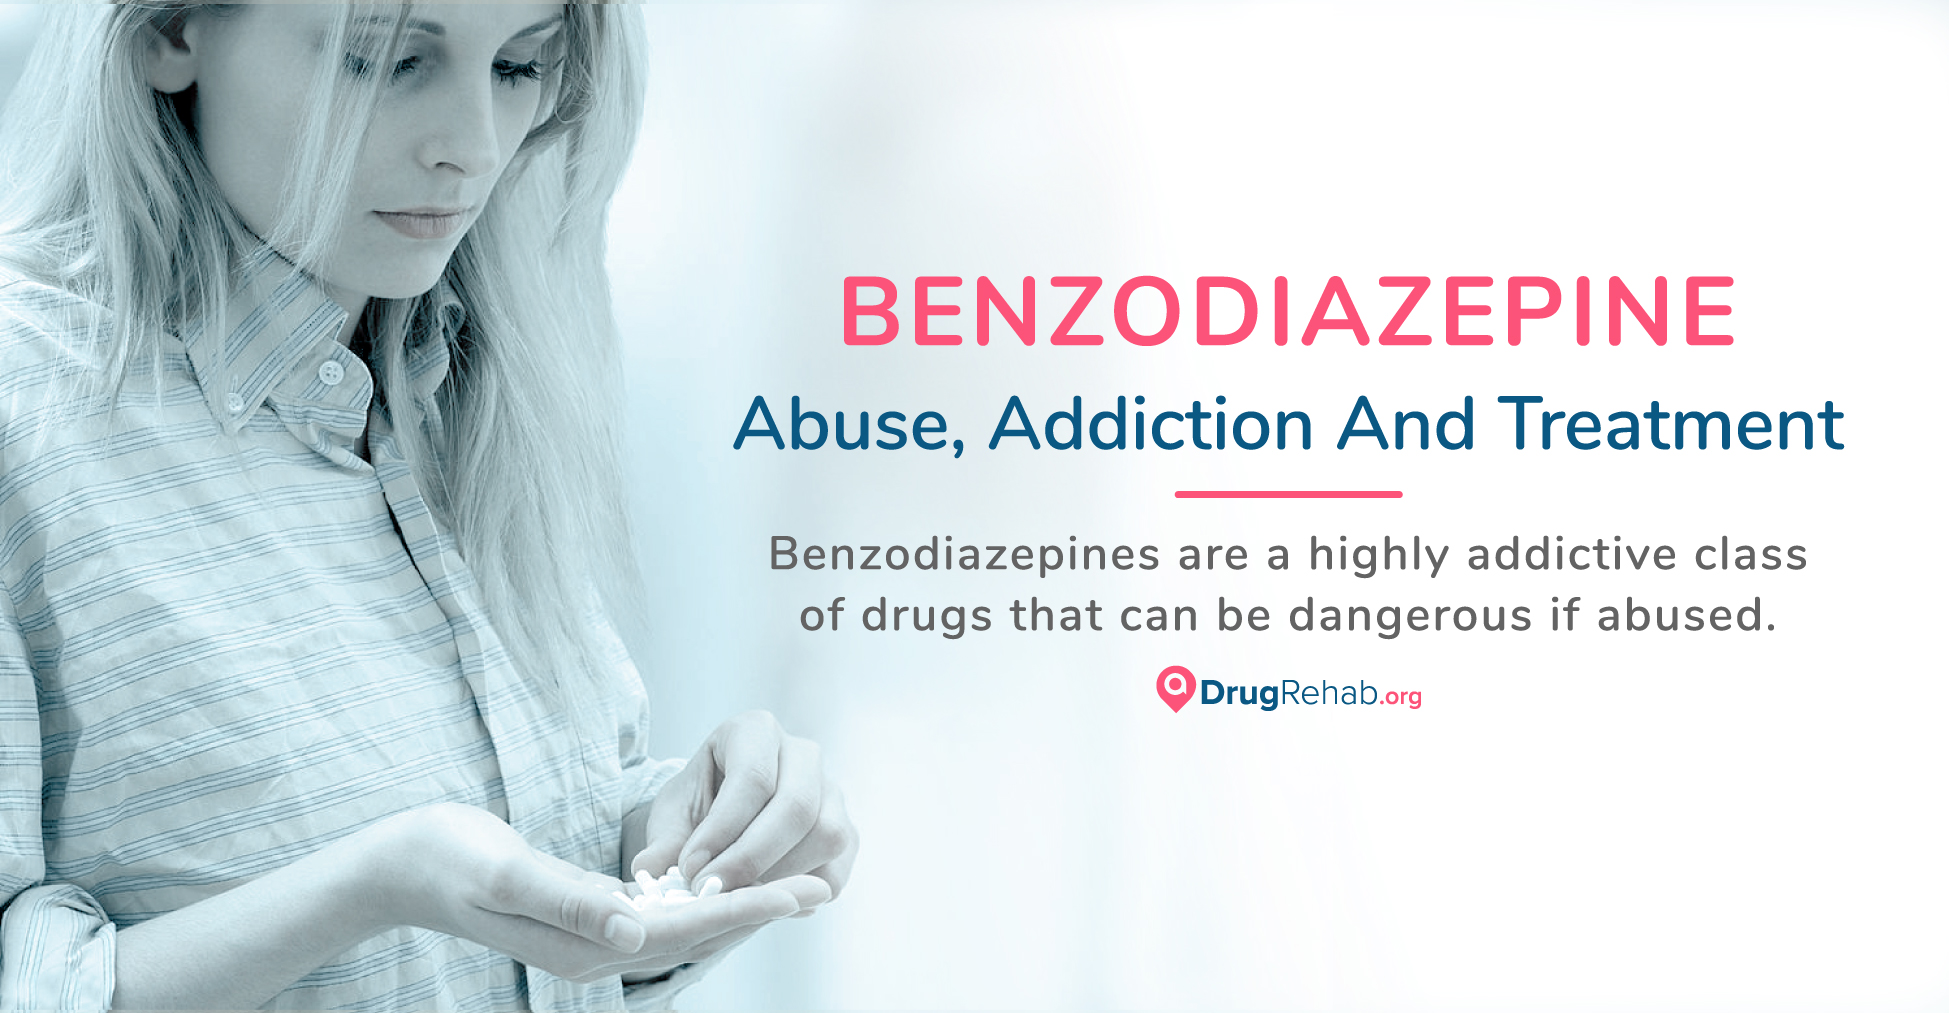 Benzodiazepine Addiction, Abuse and Treatment